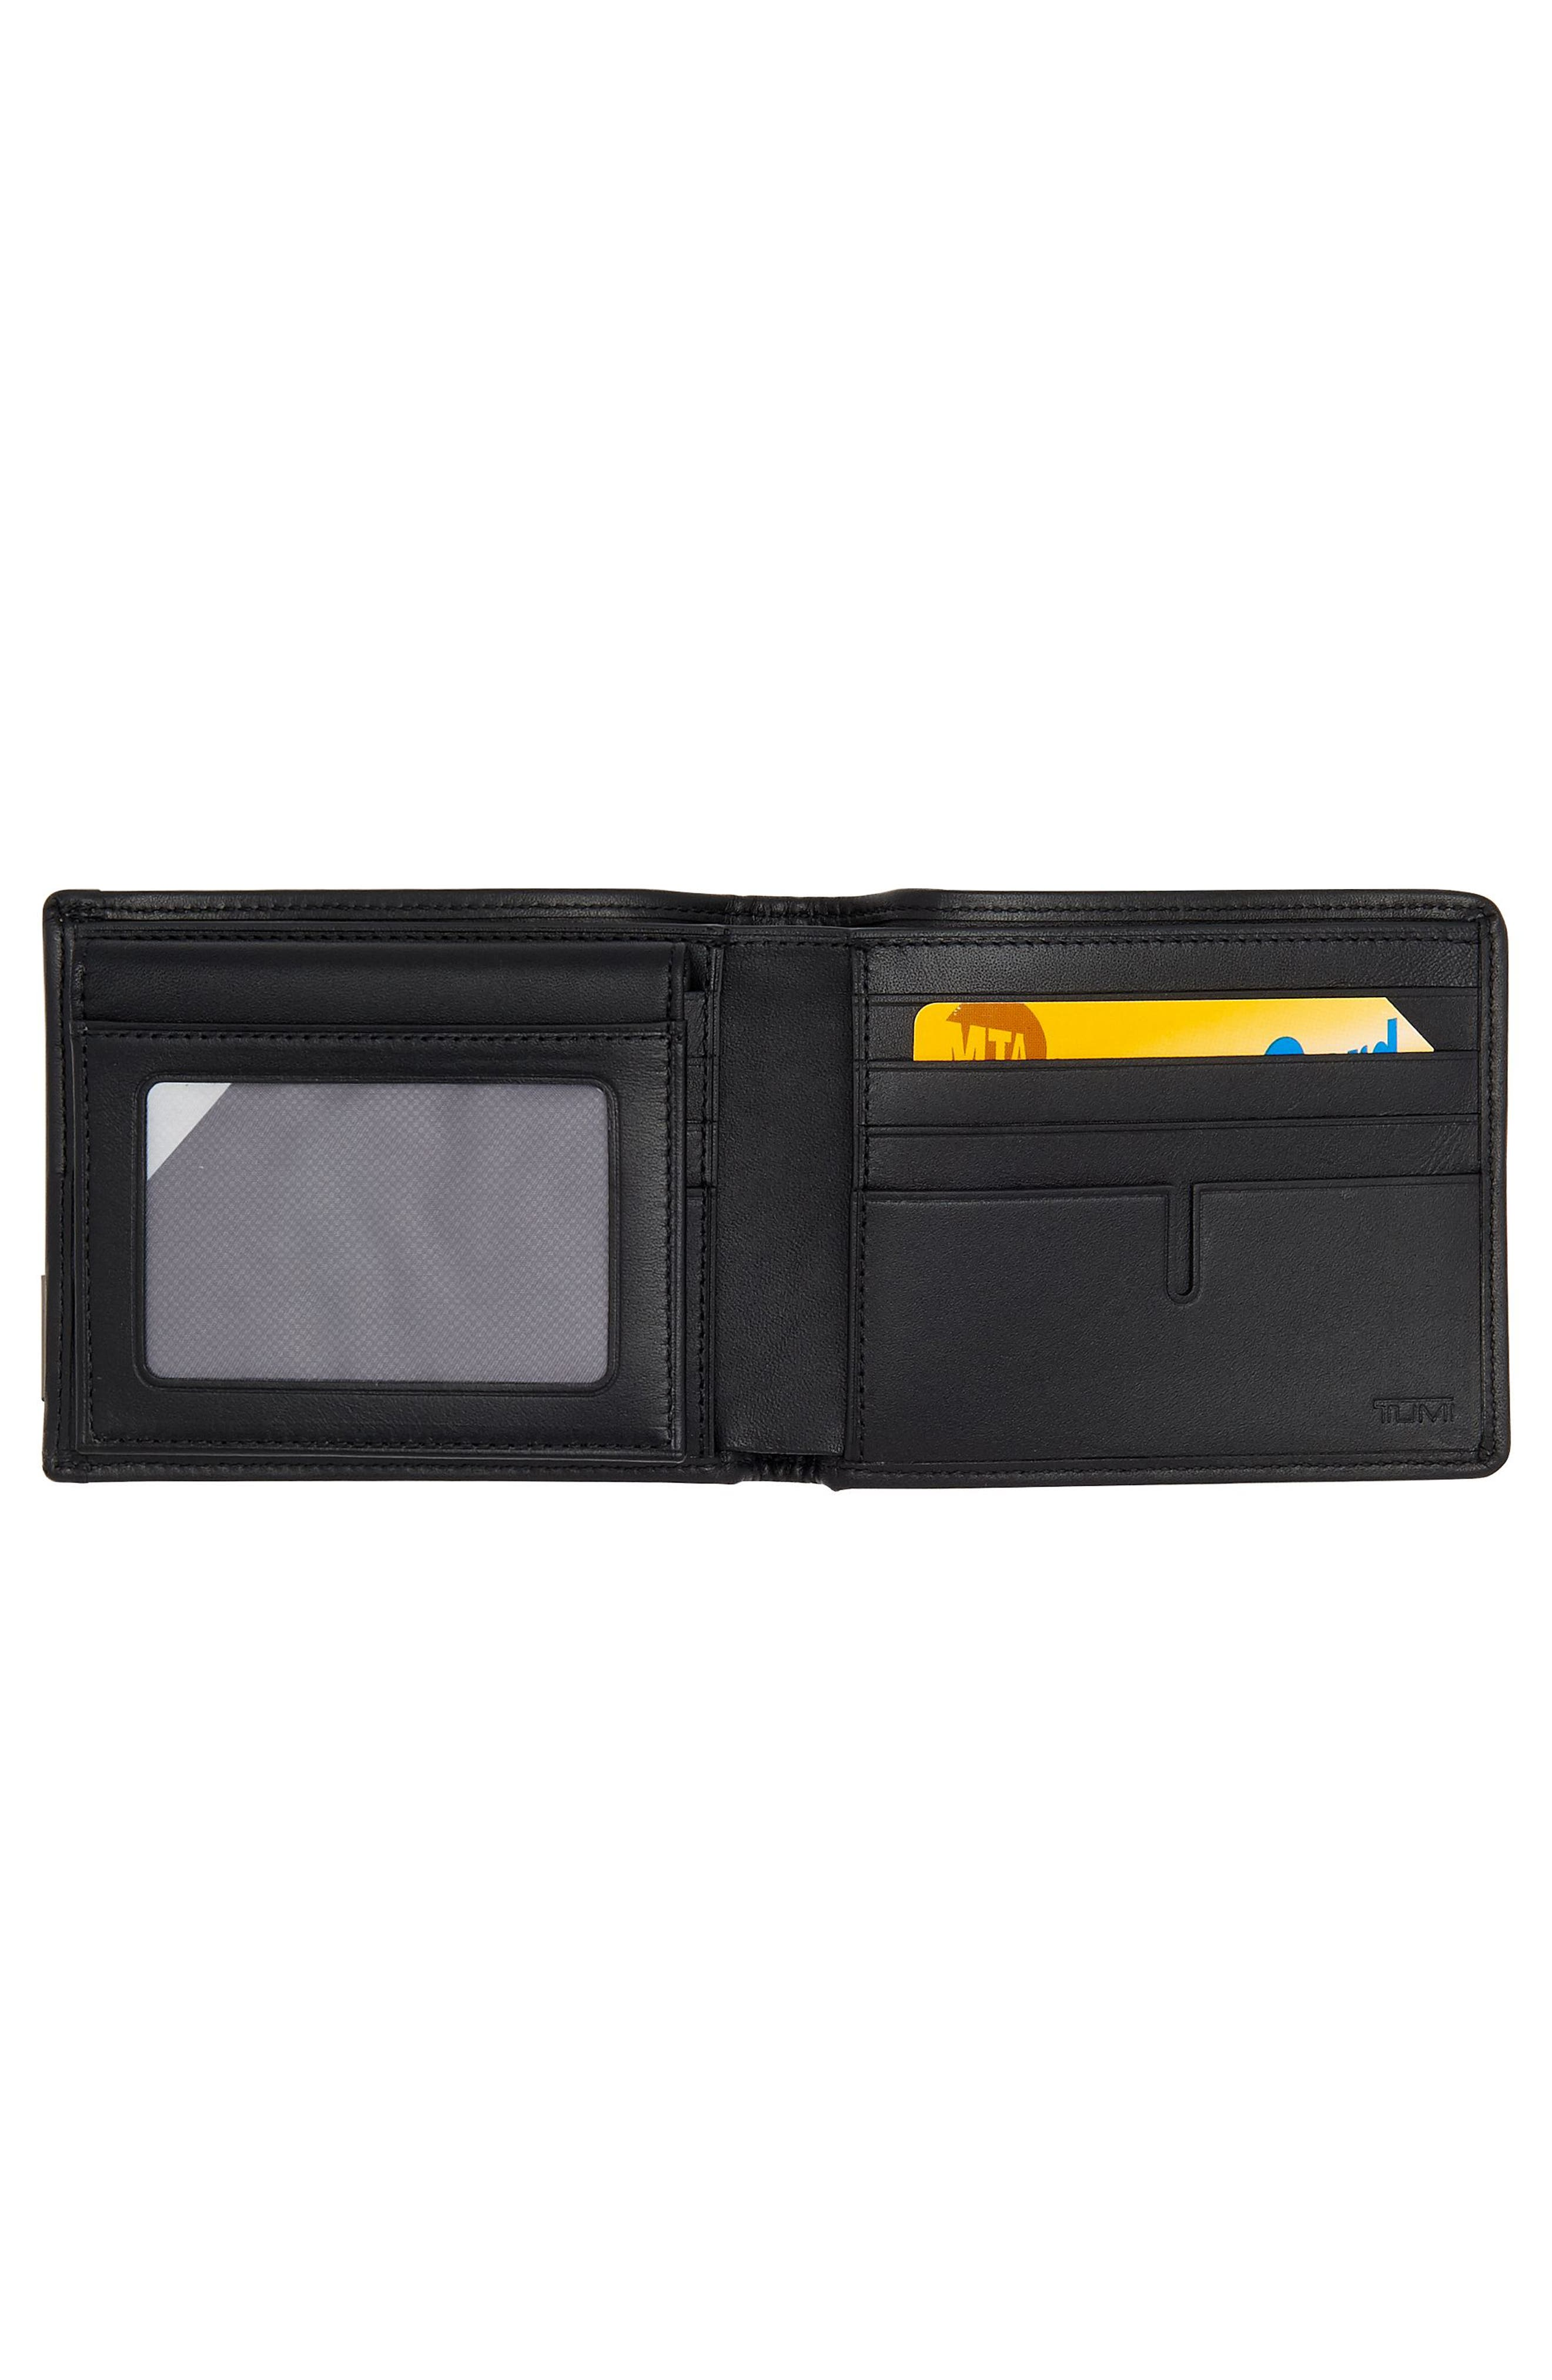 Alpha Global Pass Case Wallet,                             Alternate thumbnail 2, color,                             ANTHRACITE/ BLACK